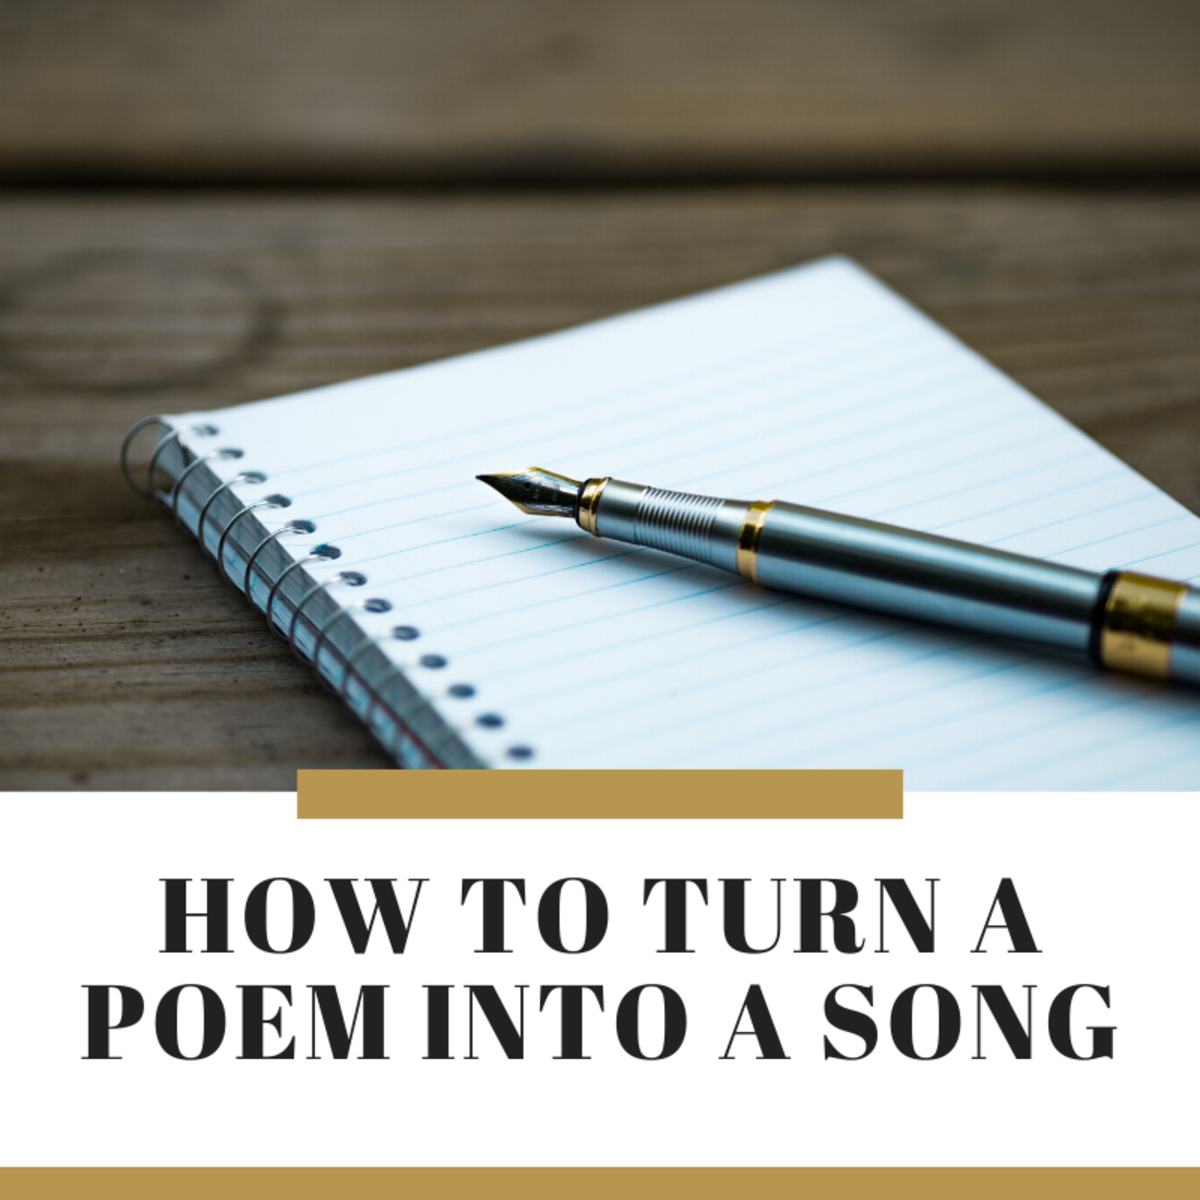 Can You Sing a Poem?